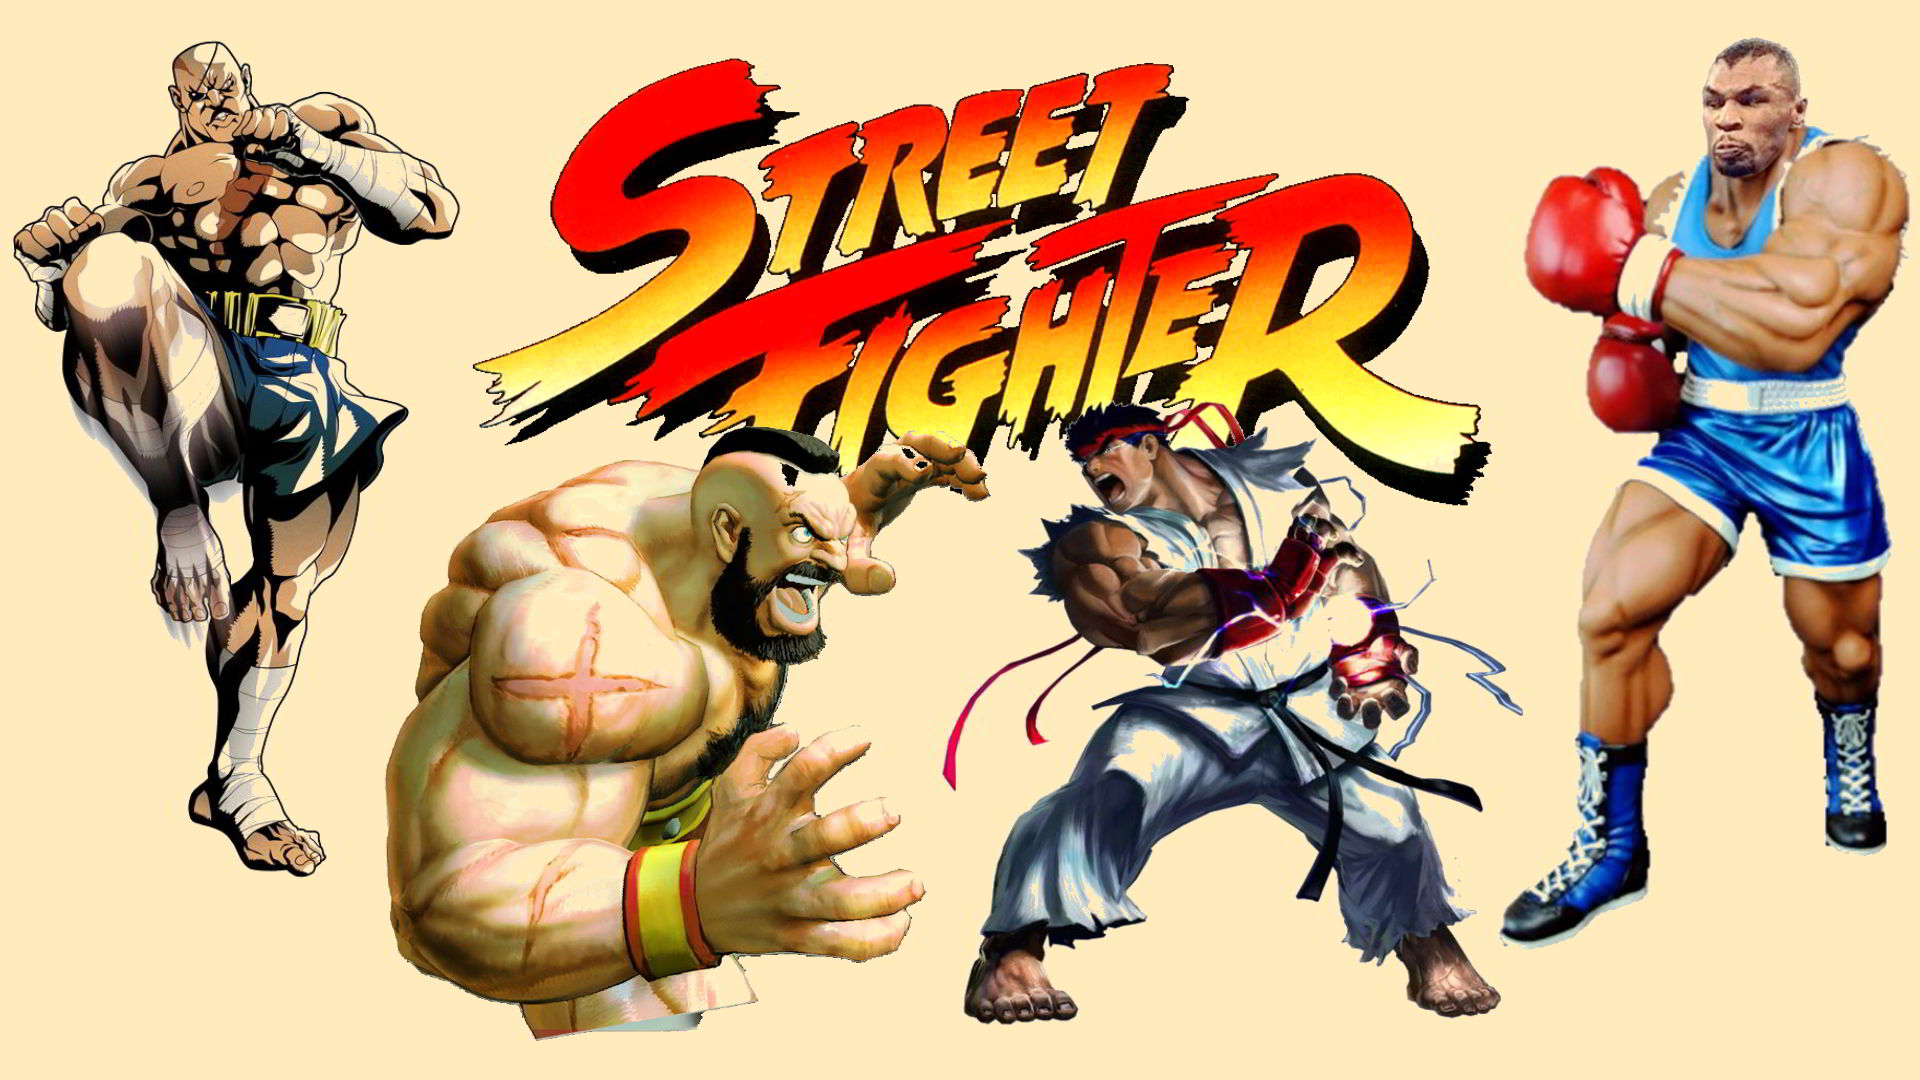 8 things you probably didn't know about street fighter